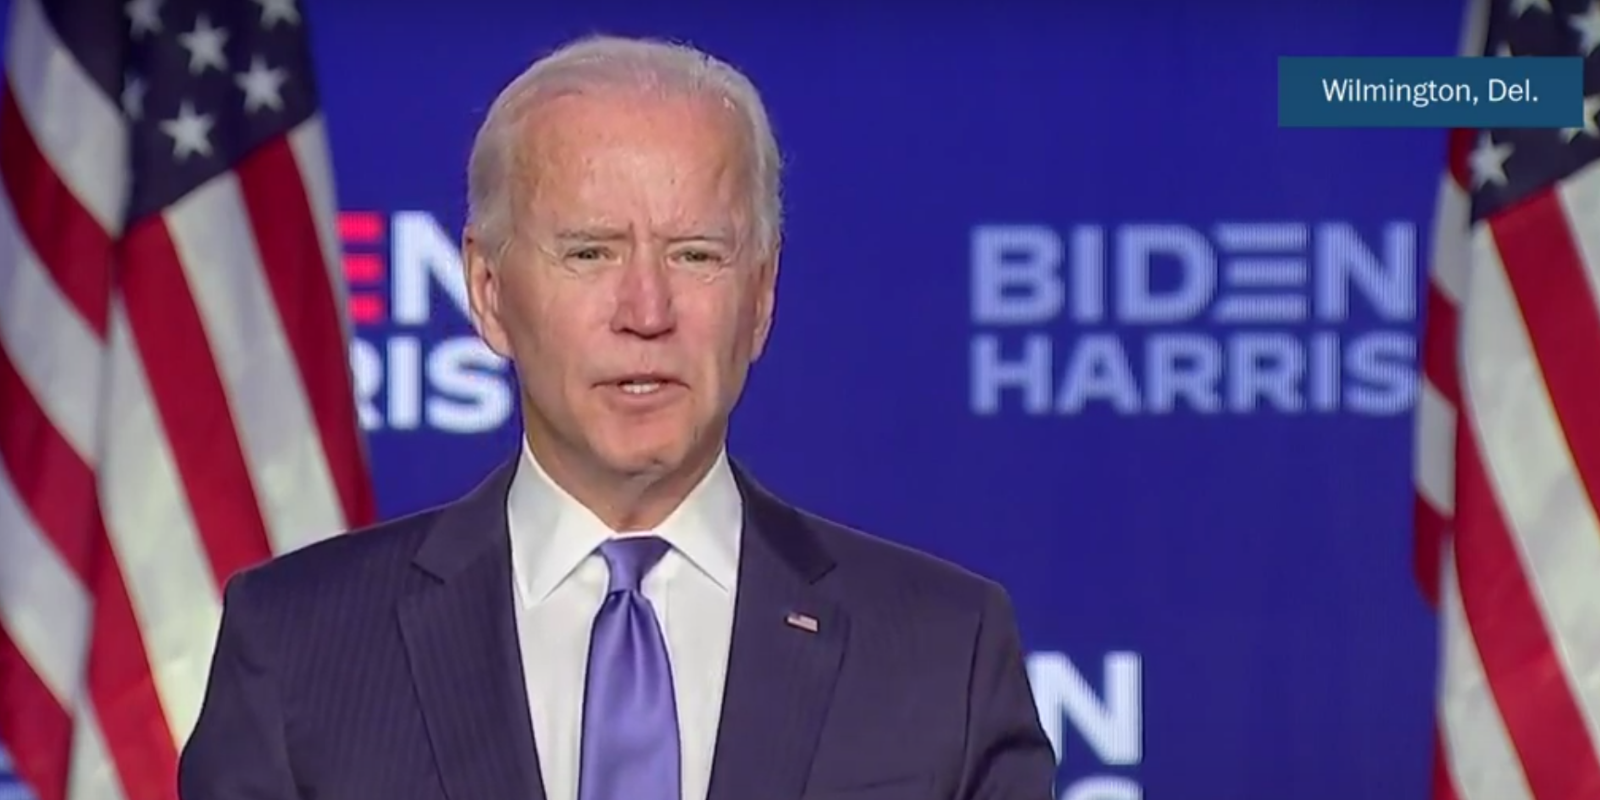 BREAKING: Joe Biden claims he has mandate to fight climate change, systemic racism in brief late-night speech